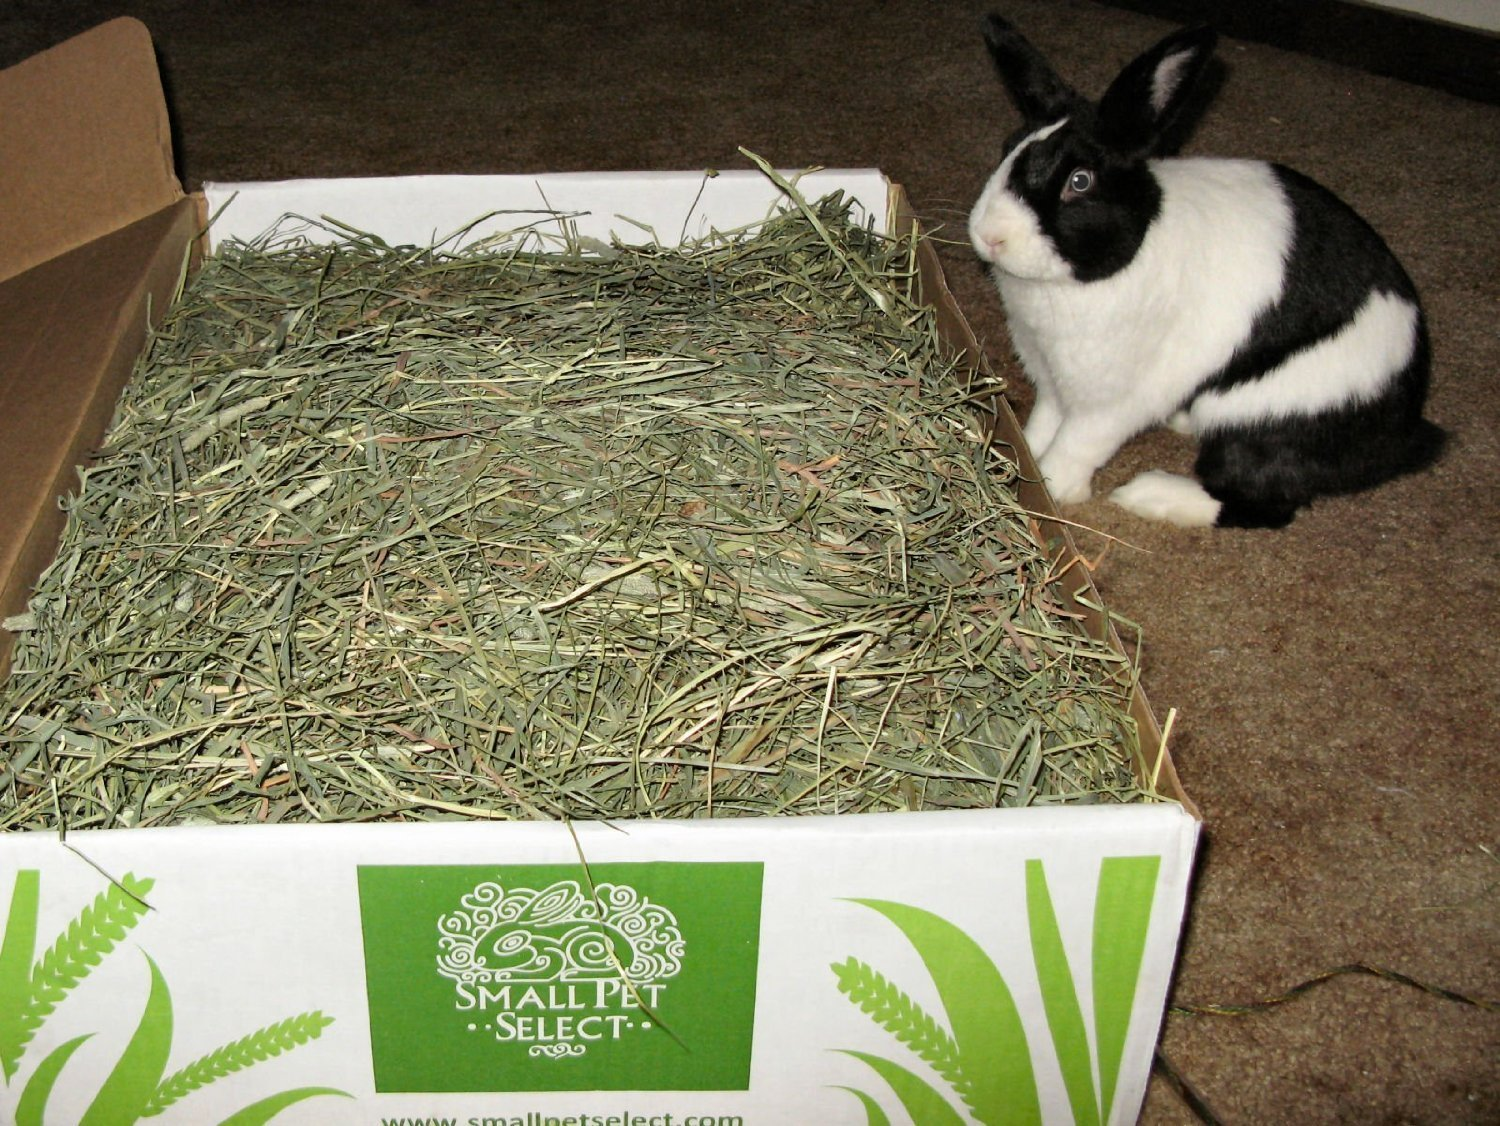 Small Pet Select 2nd Cutting Perfect Blend Timothy Hay Pet Food 10-Pound TIMOTHYHAY-010